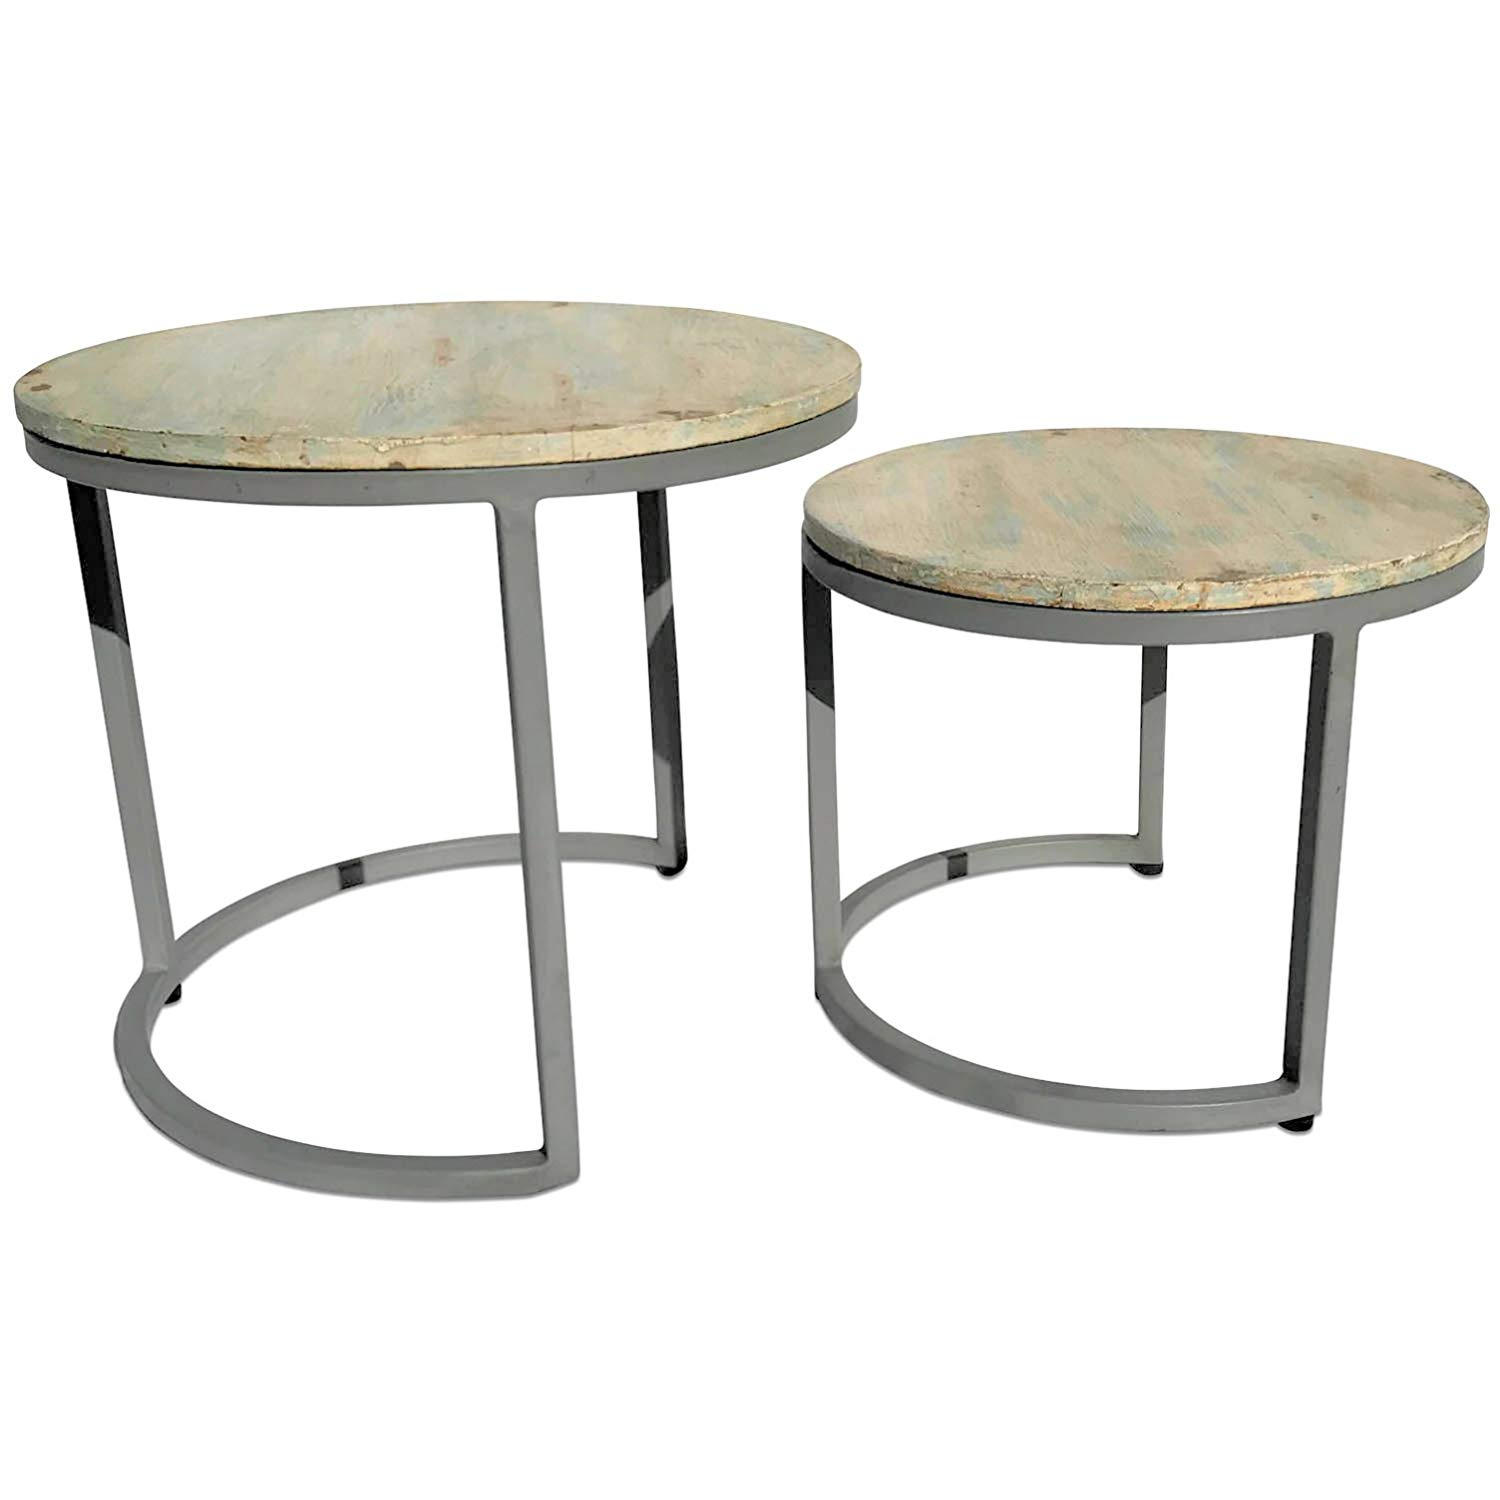 accent table room essentials nesting tables blue christmas best outdoor chairs cream dining counter height set with bench small white garden target furniture round bar marble top